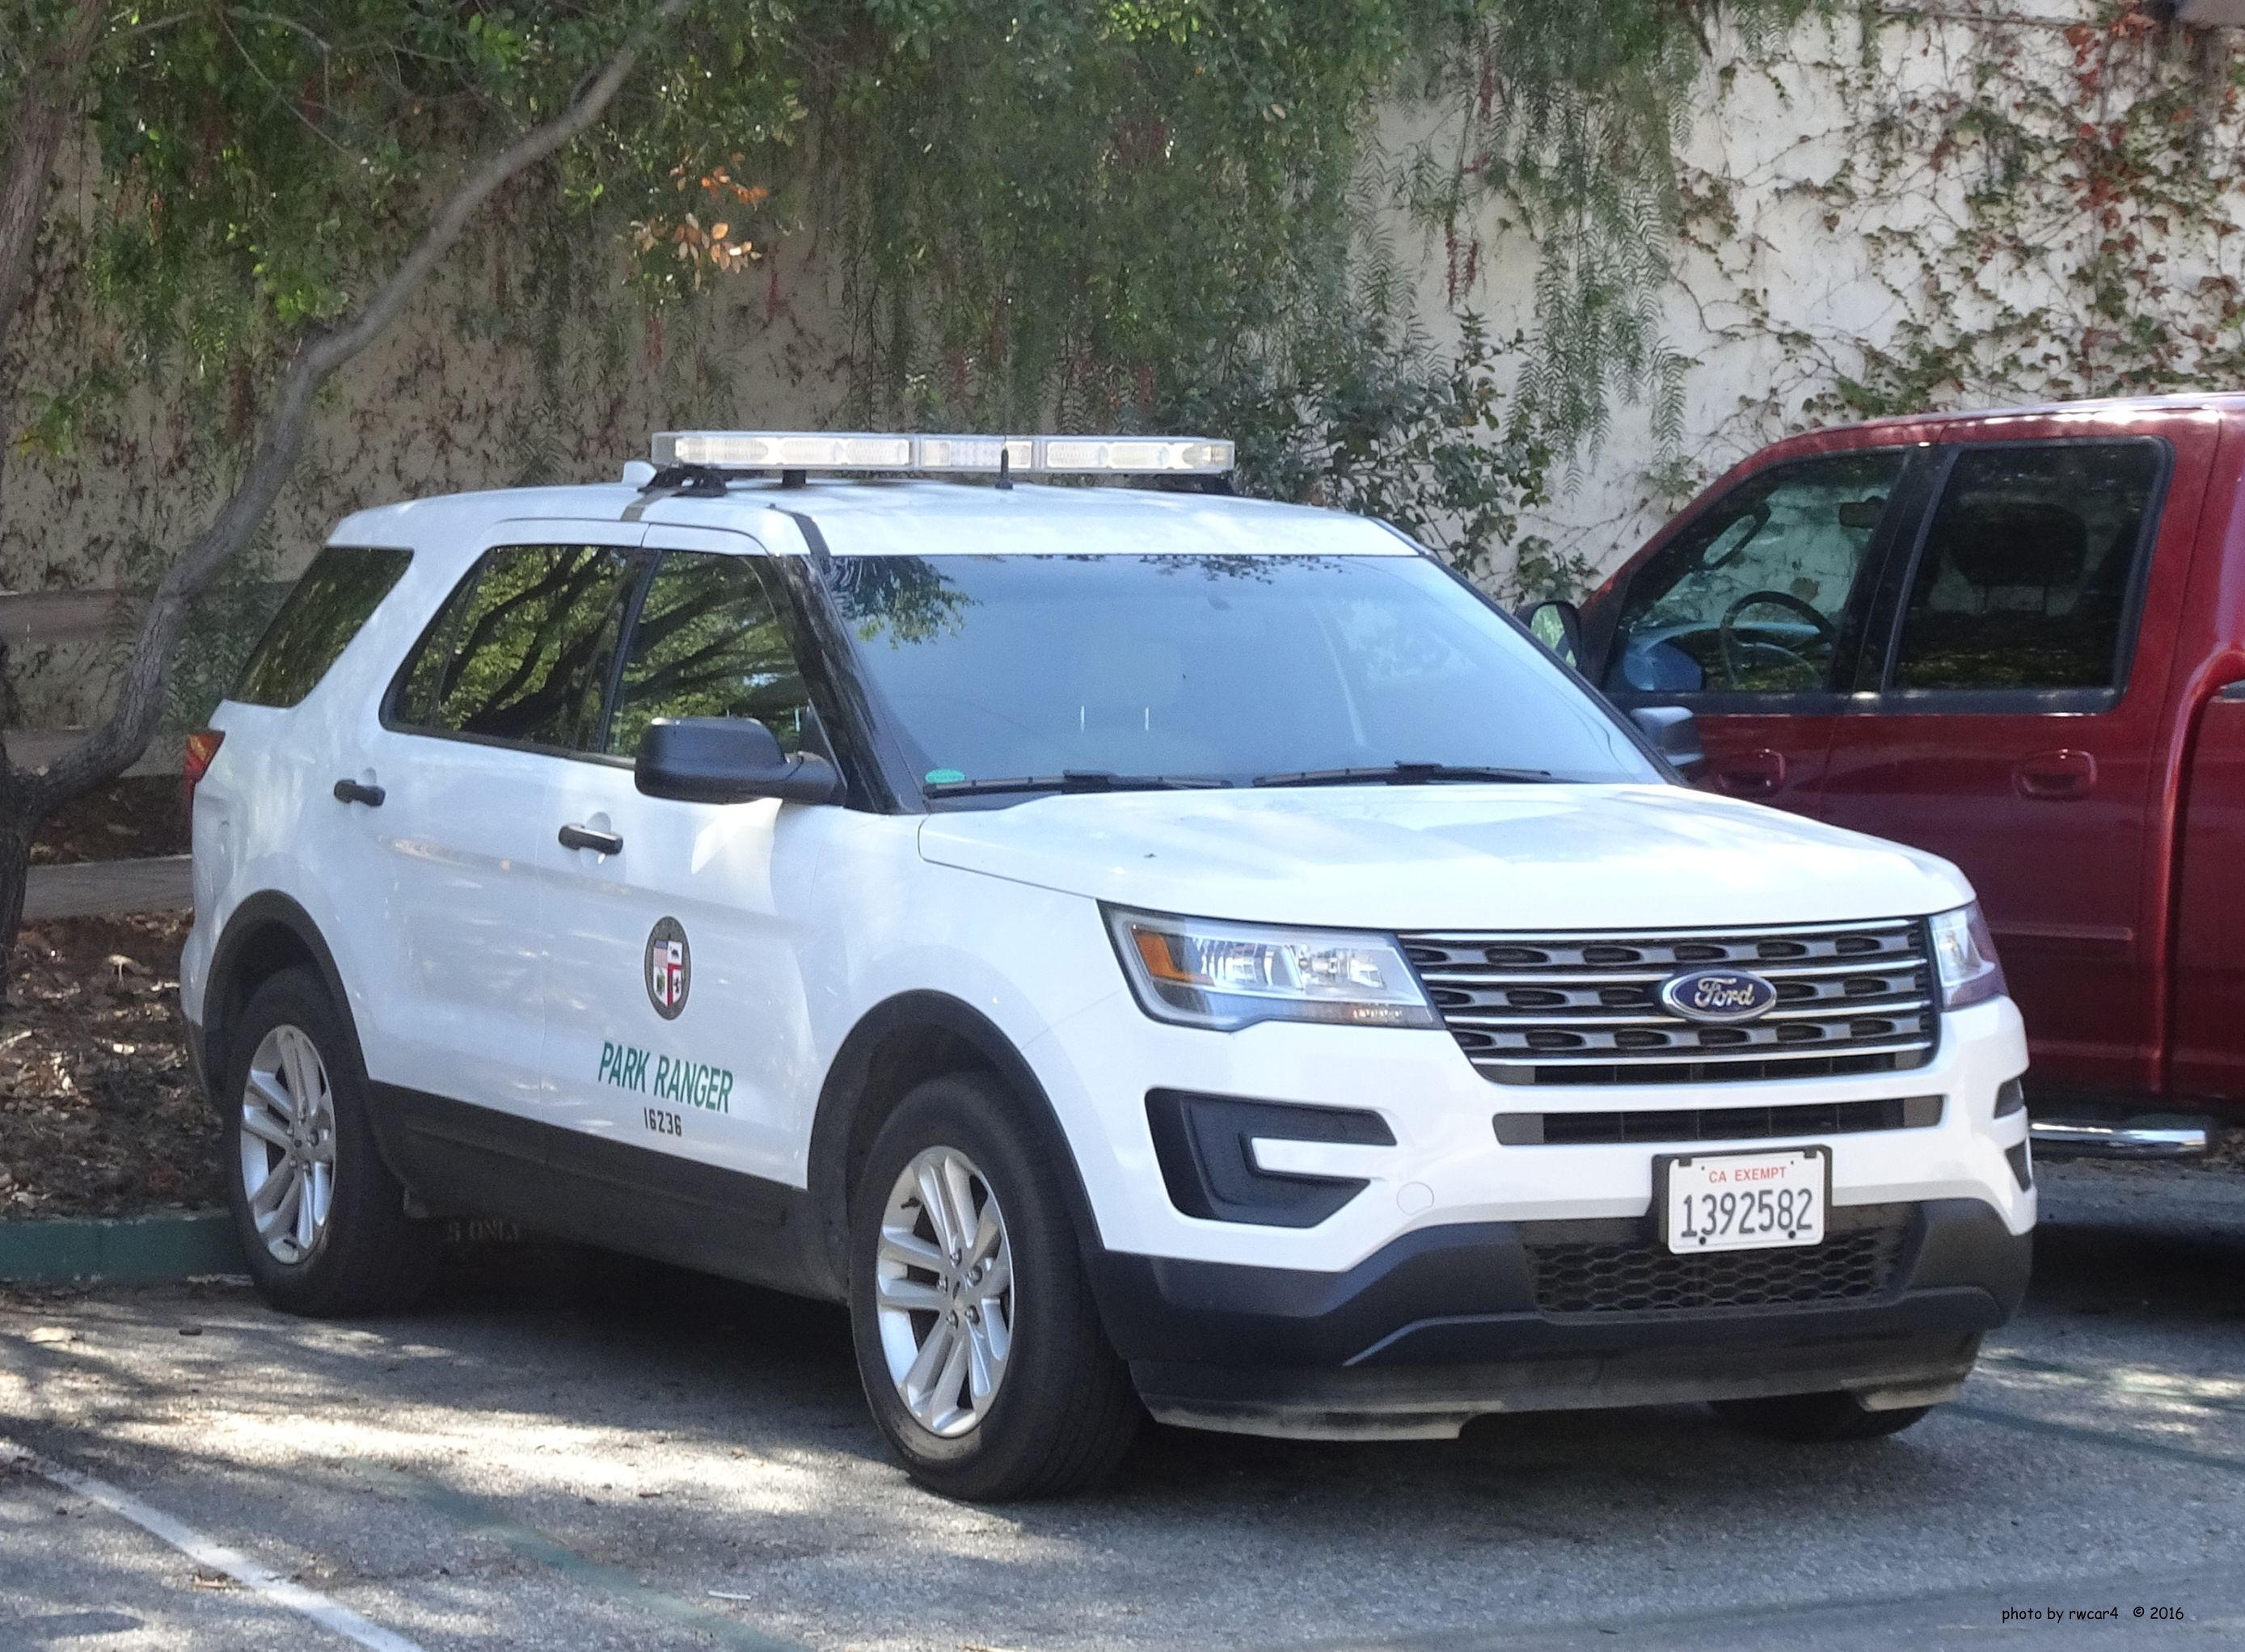 Public Safety Equipment Los Angeles City Park Ranger Ford Interceptor Utility Vehicle Emergency Vehicles Ford Police Police Cars